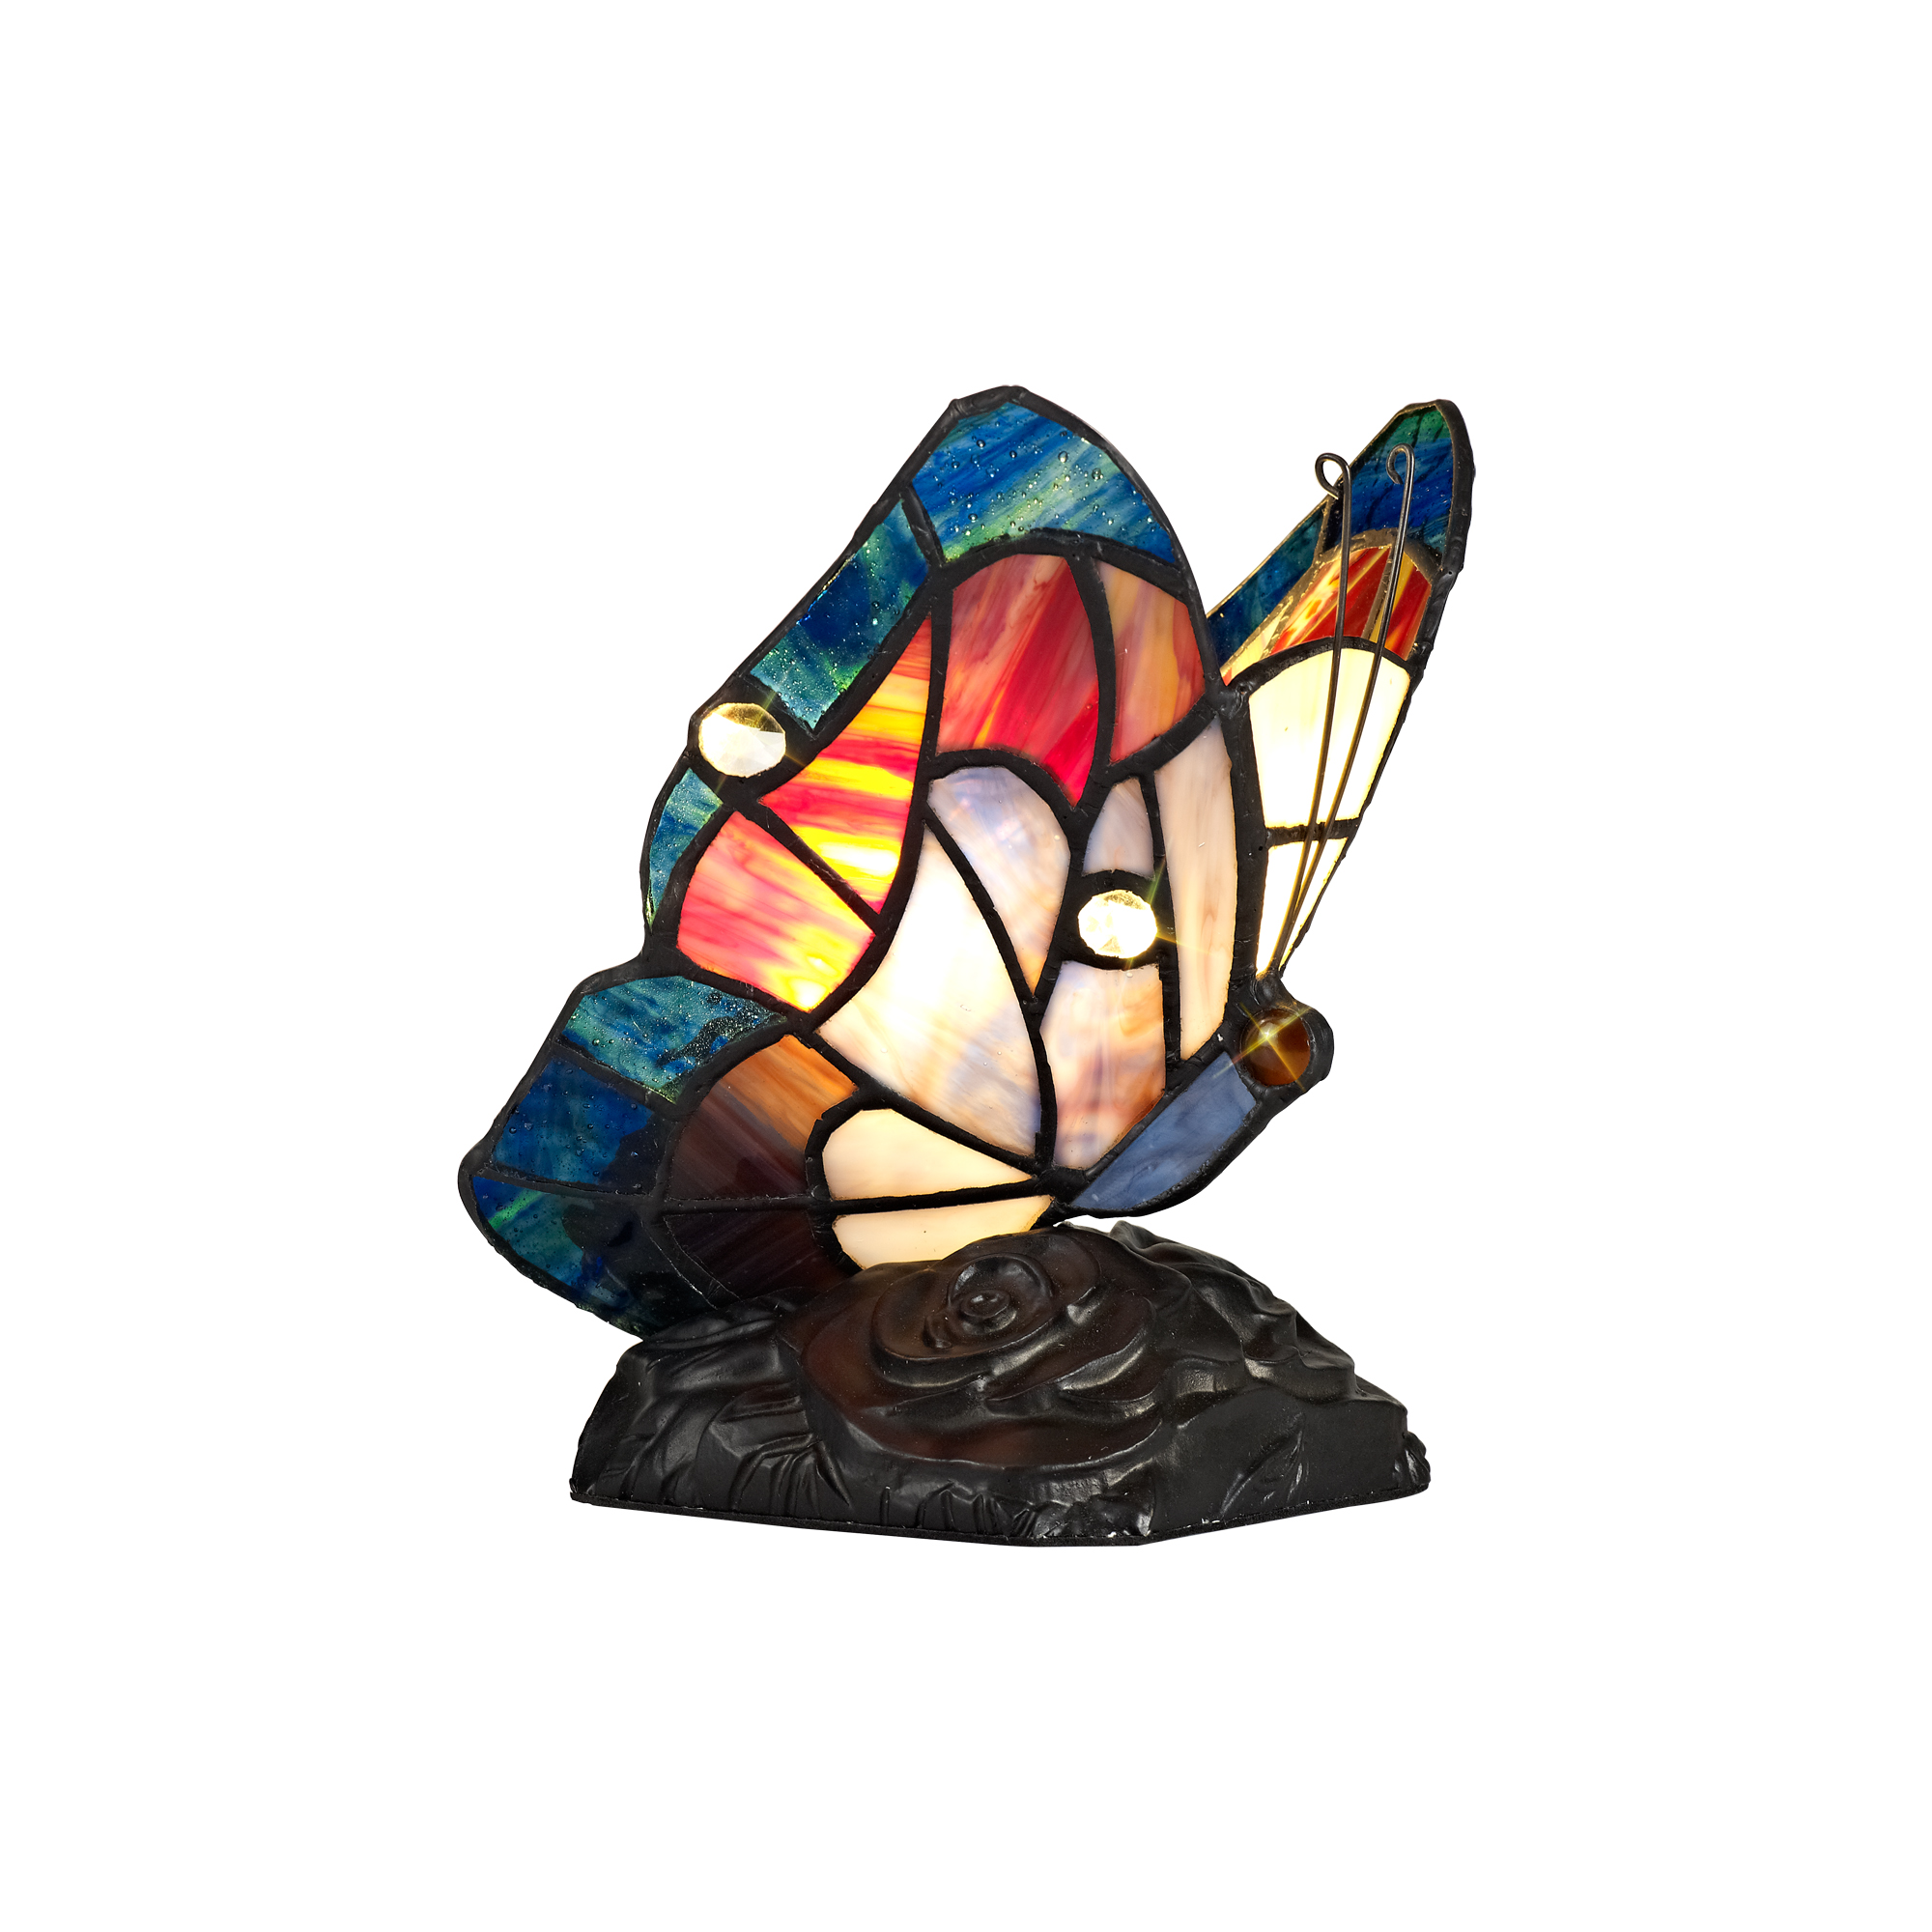 Tiffany Butterfly Table Lamp, 1 x E14, Black Base With Blue/Brown Glass With Clear Crystal